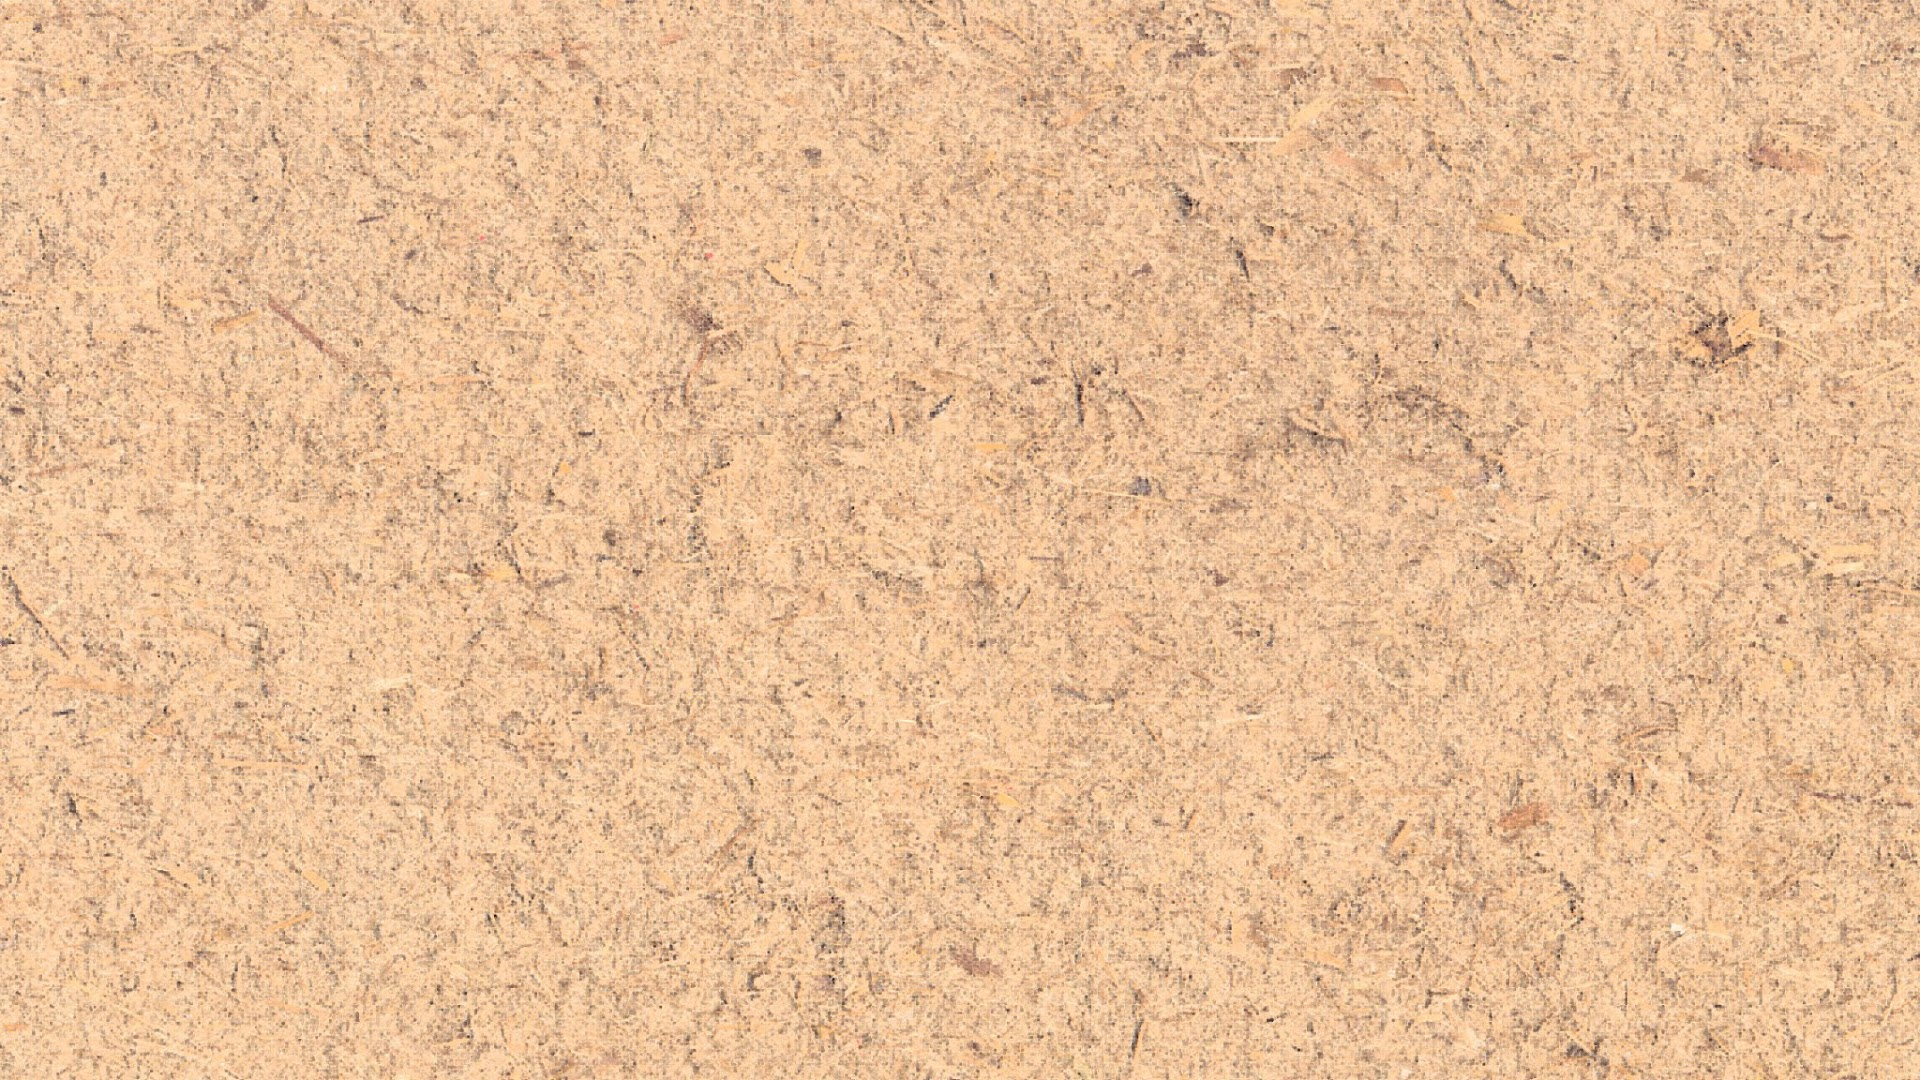 Brown Eco Recycles Paper Background